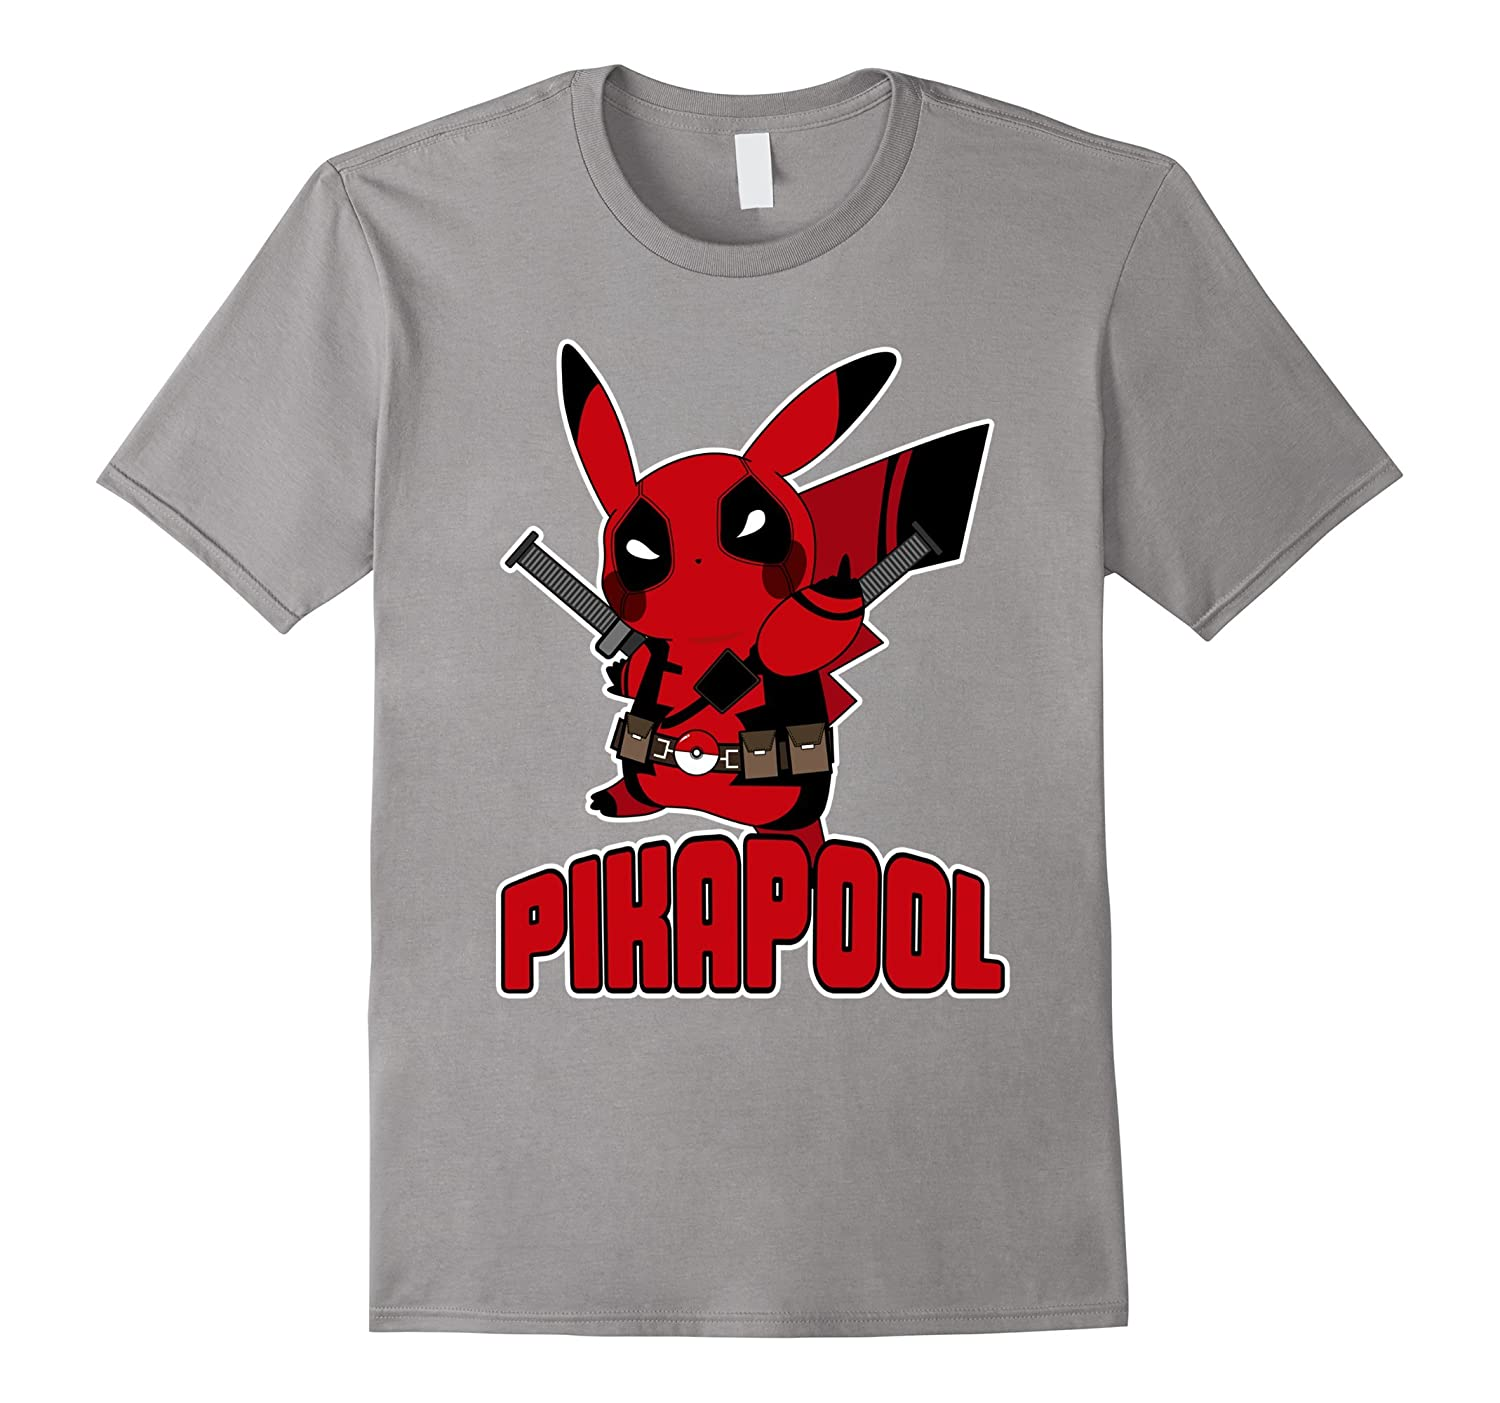 bffbbc74 Pikapool T-shirt Dark color Tee-RT – Rateeshirt